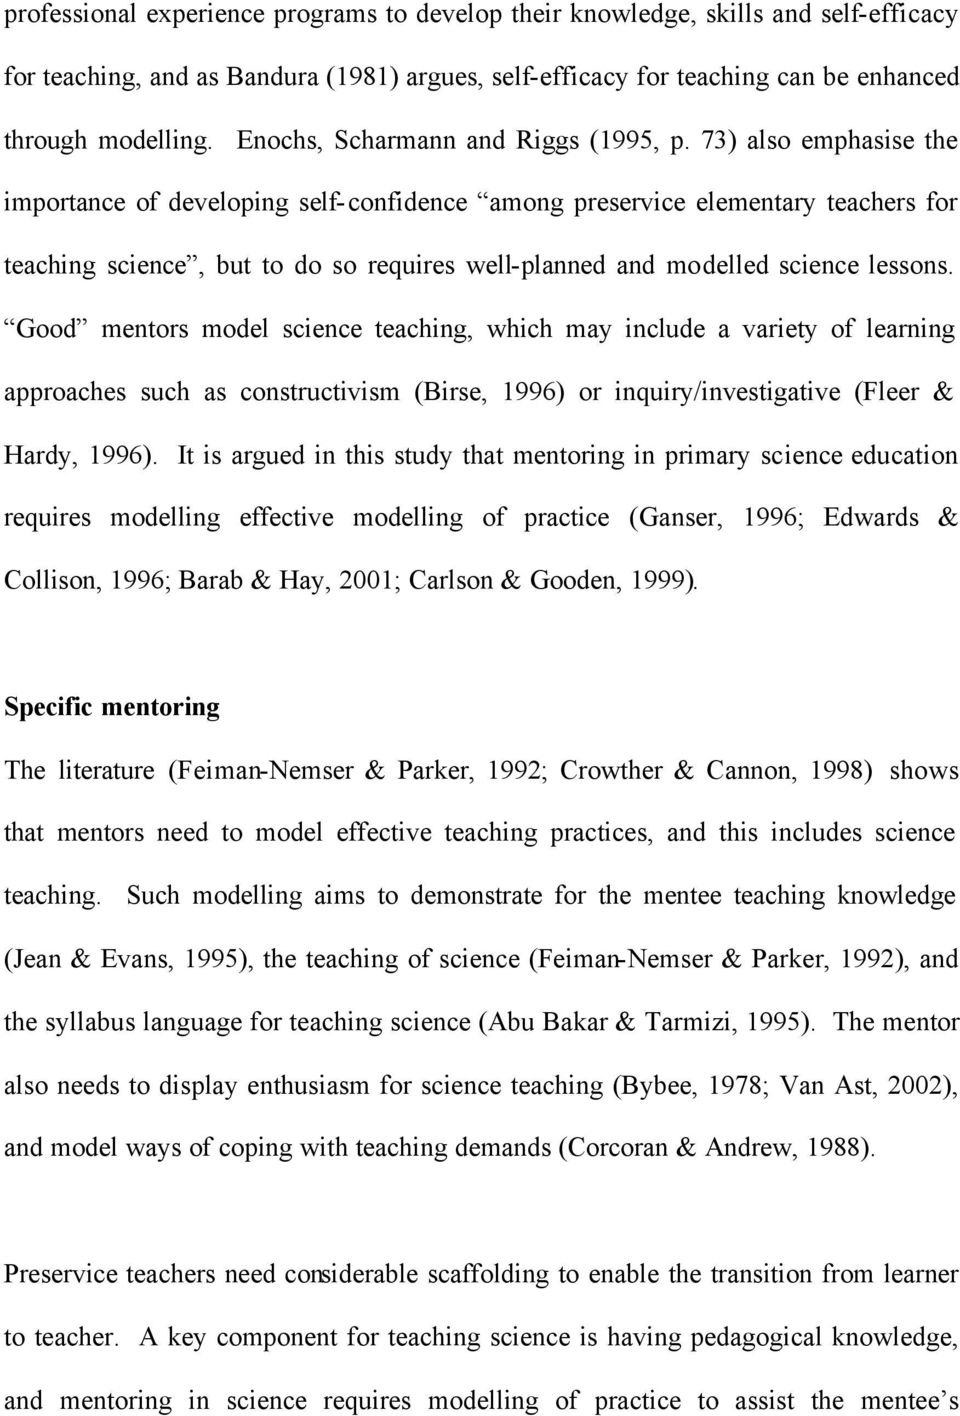 73) also emphasise the importance of developing self-confidence among preservice elementary teachers for teaching science, but to do so requires well-planned and modelled science lessons.